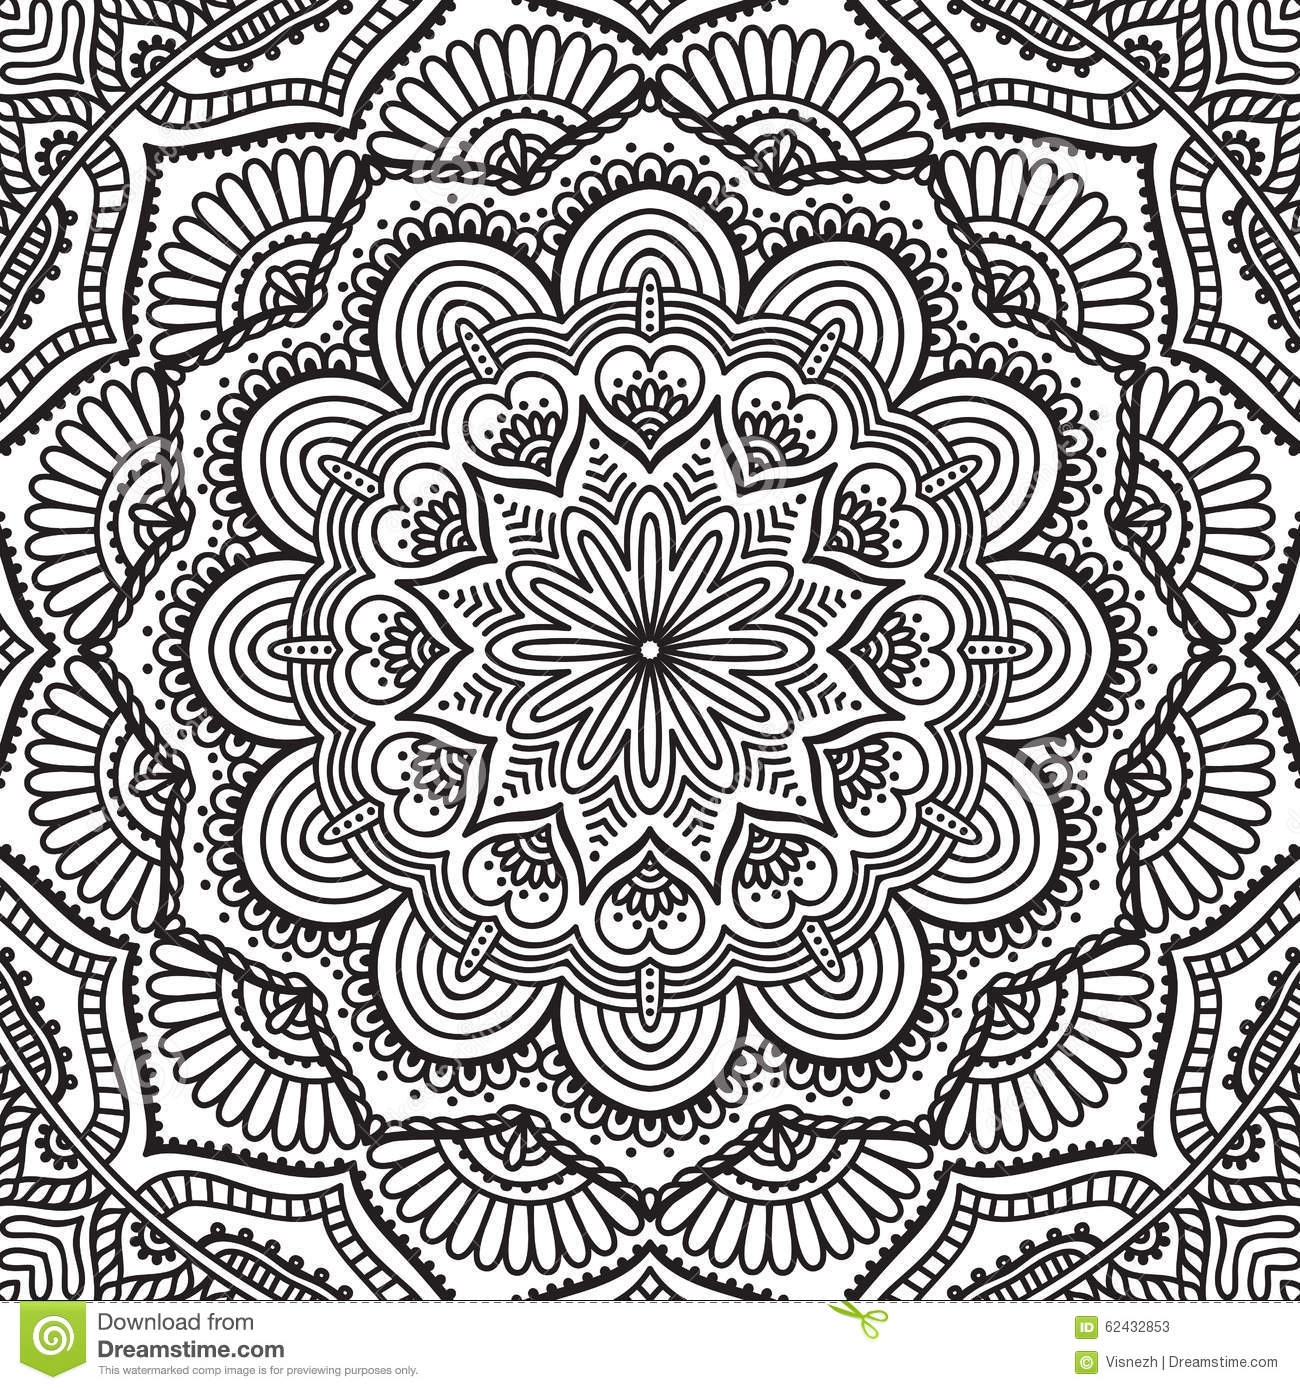 Mandala Coloring Page Stock Vector Illustration Of Islamic